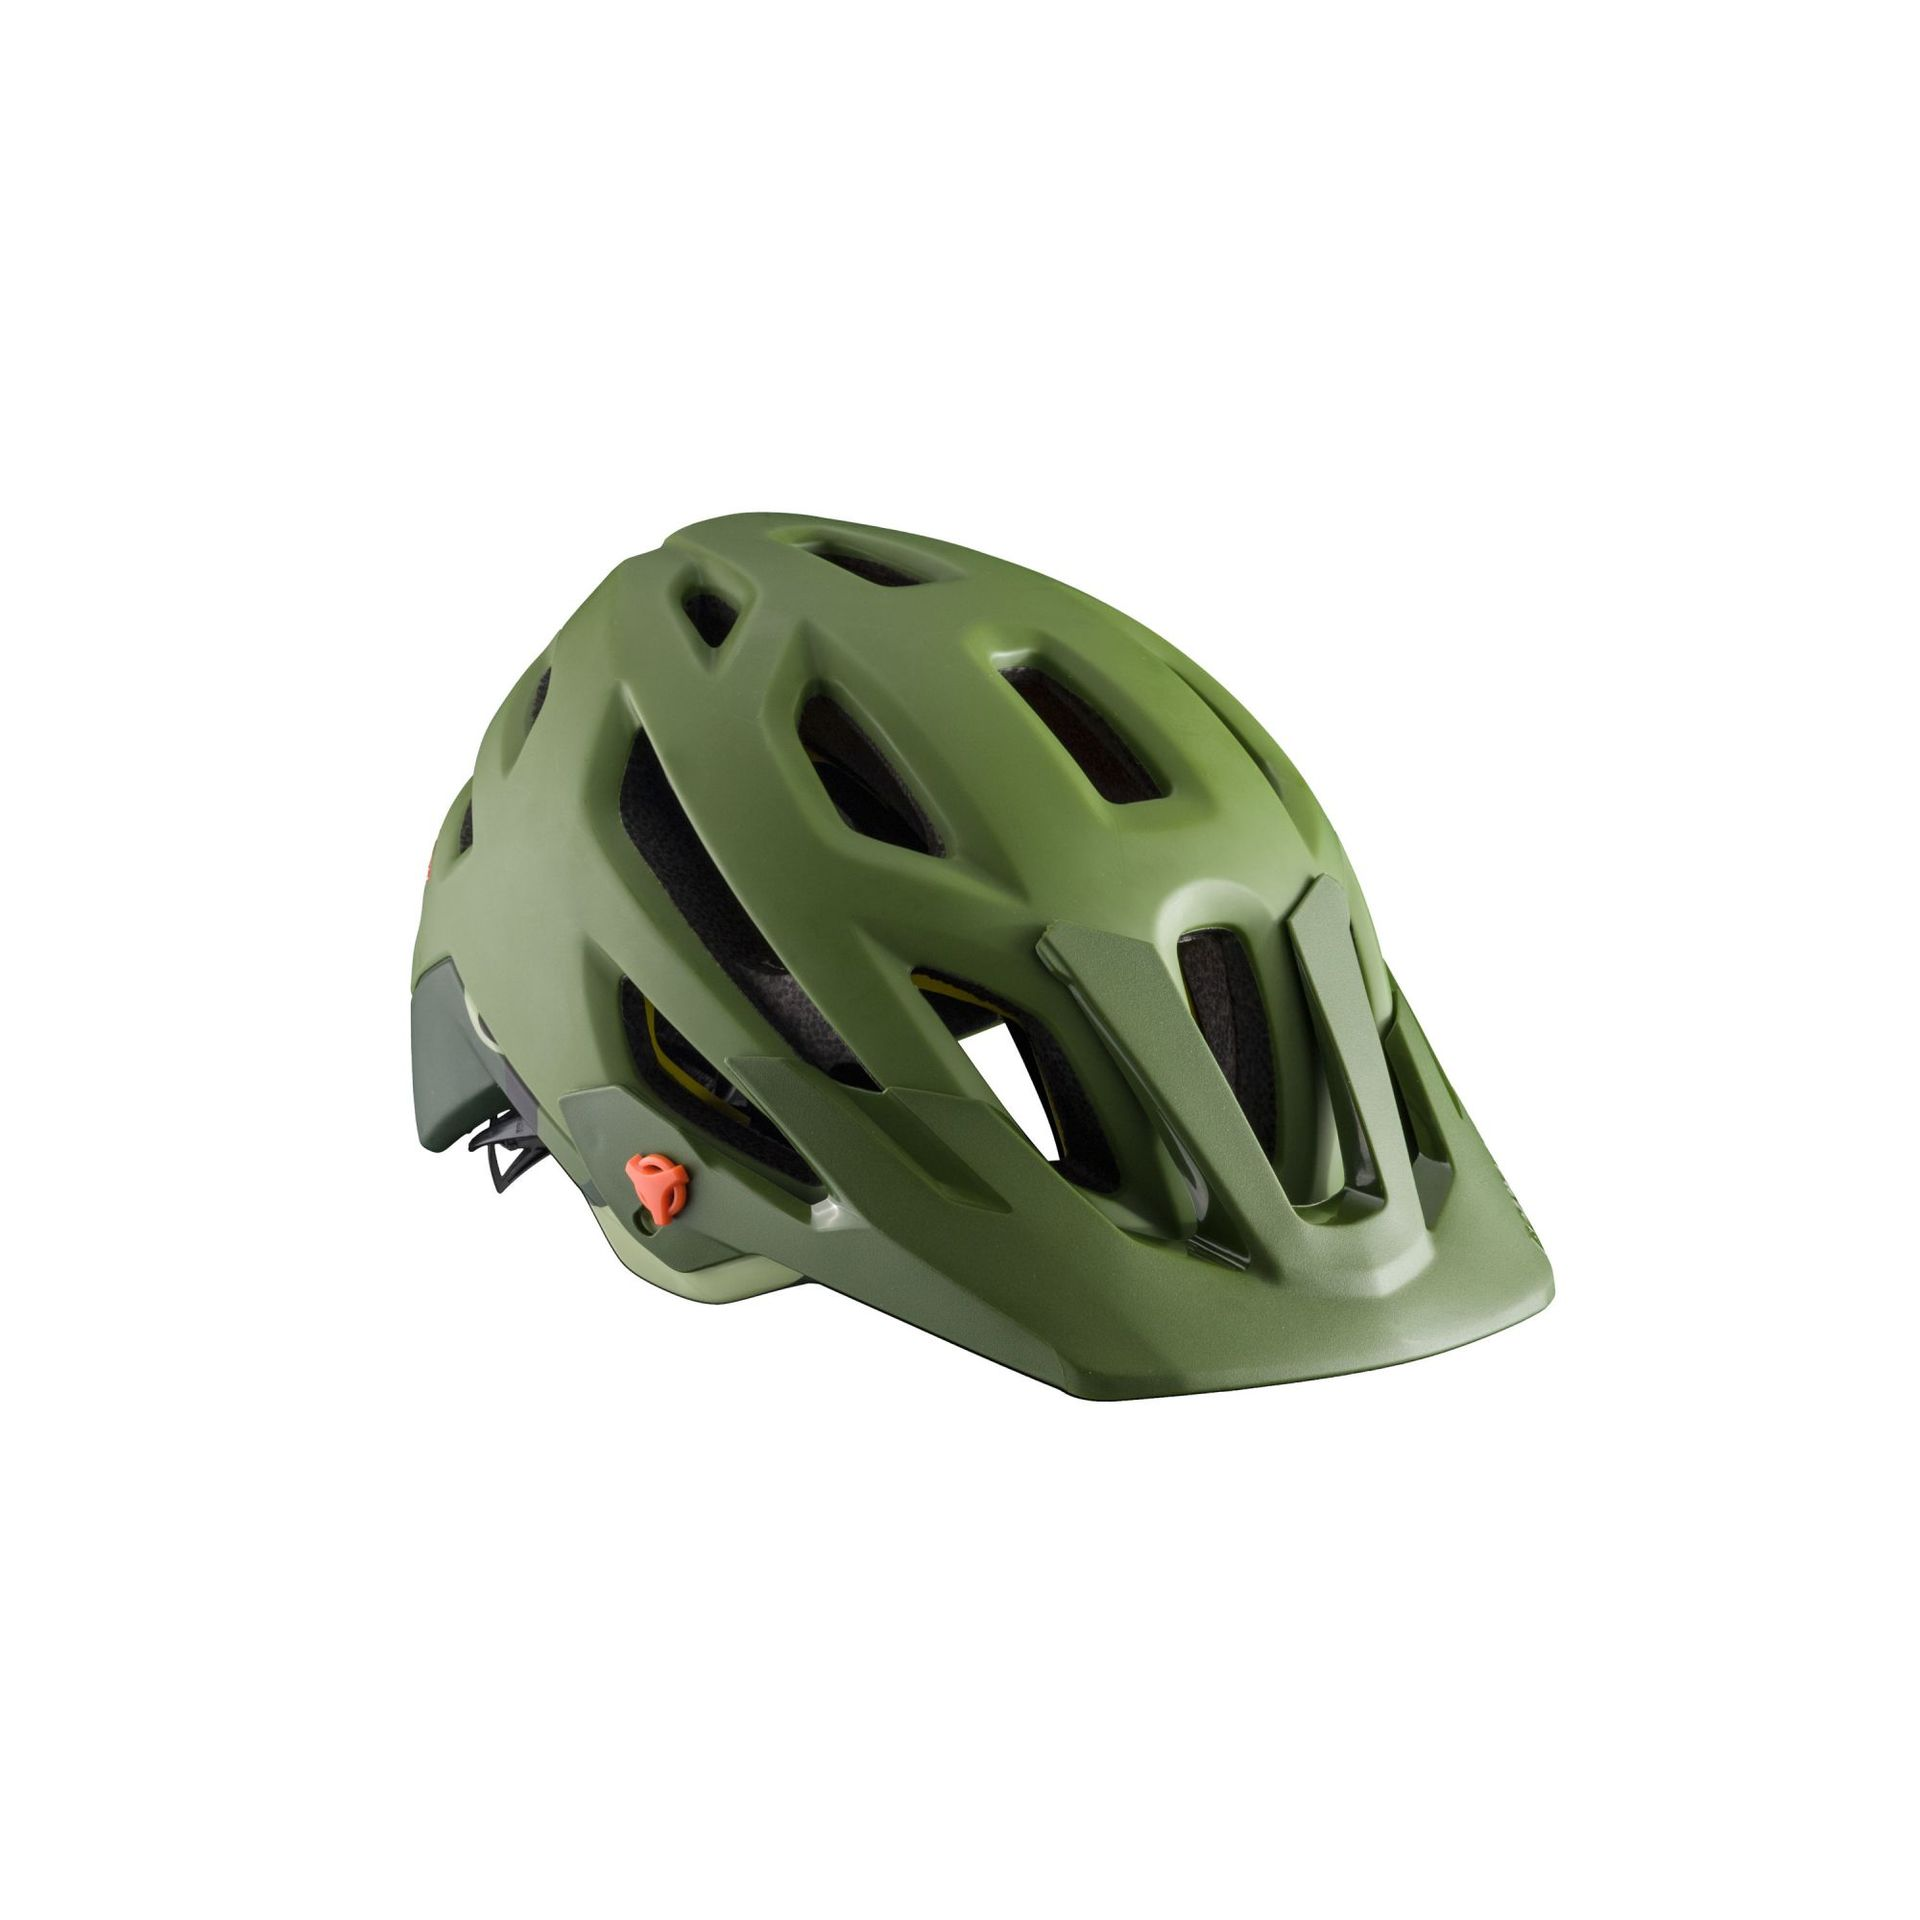 KASK ROWEROWY BONTRAGER RALLY MIPS 1